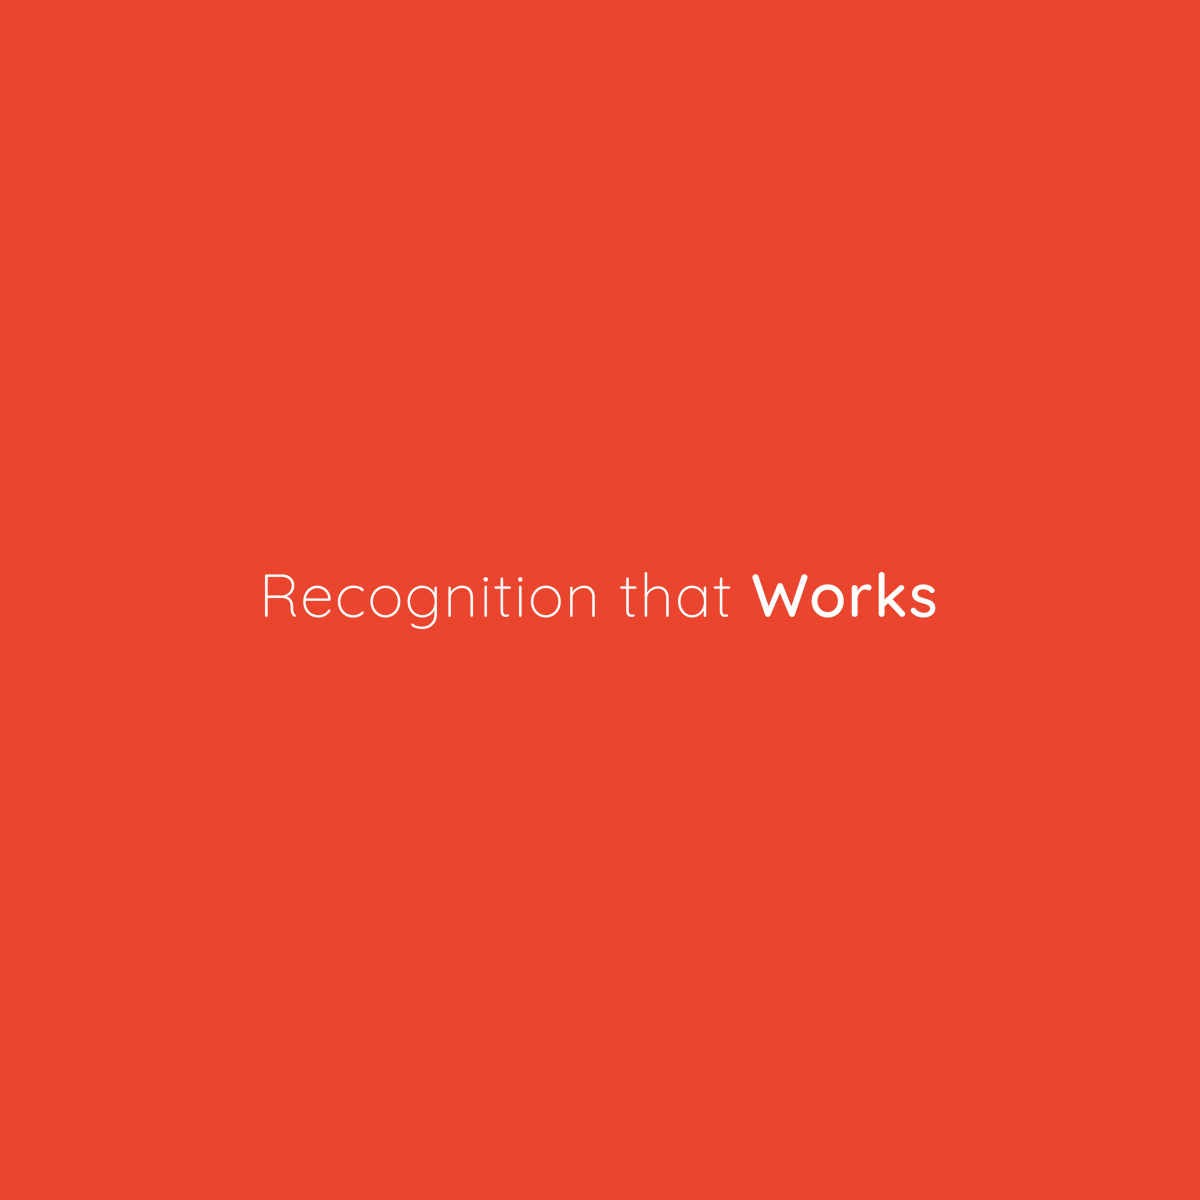 ampt-recognition-that-works